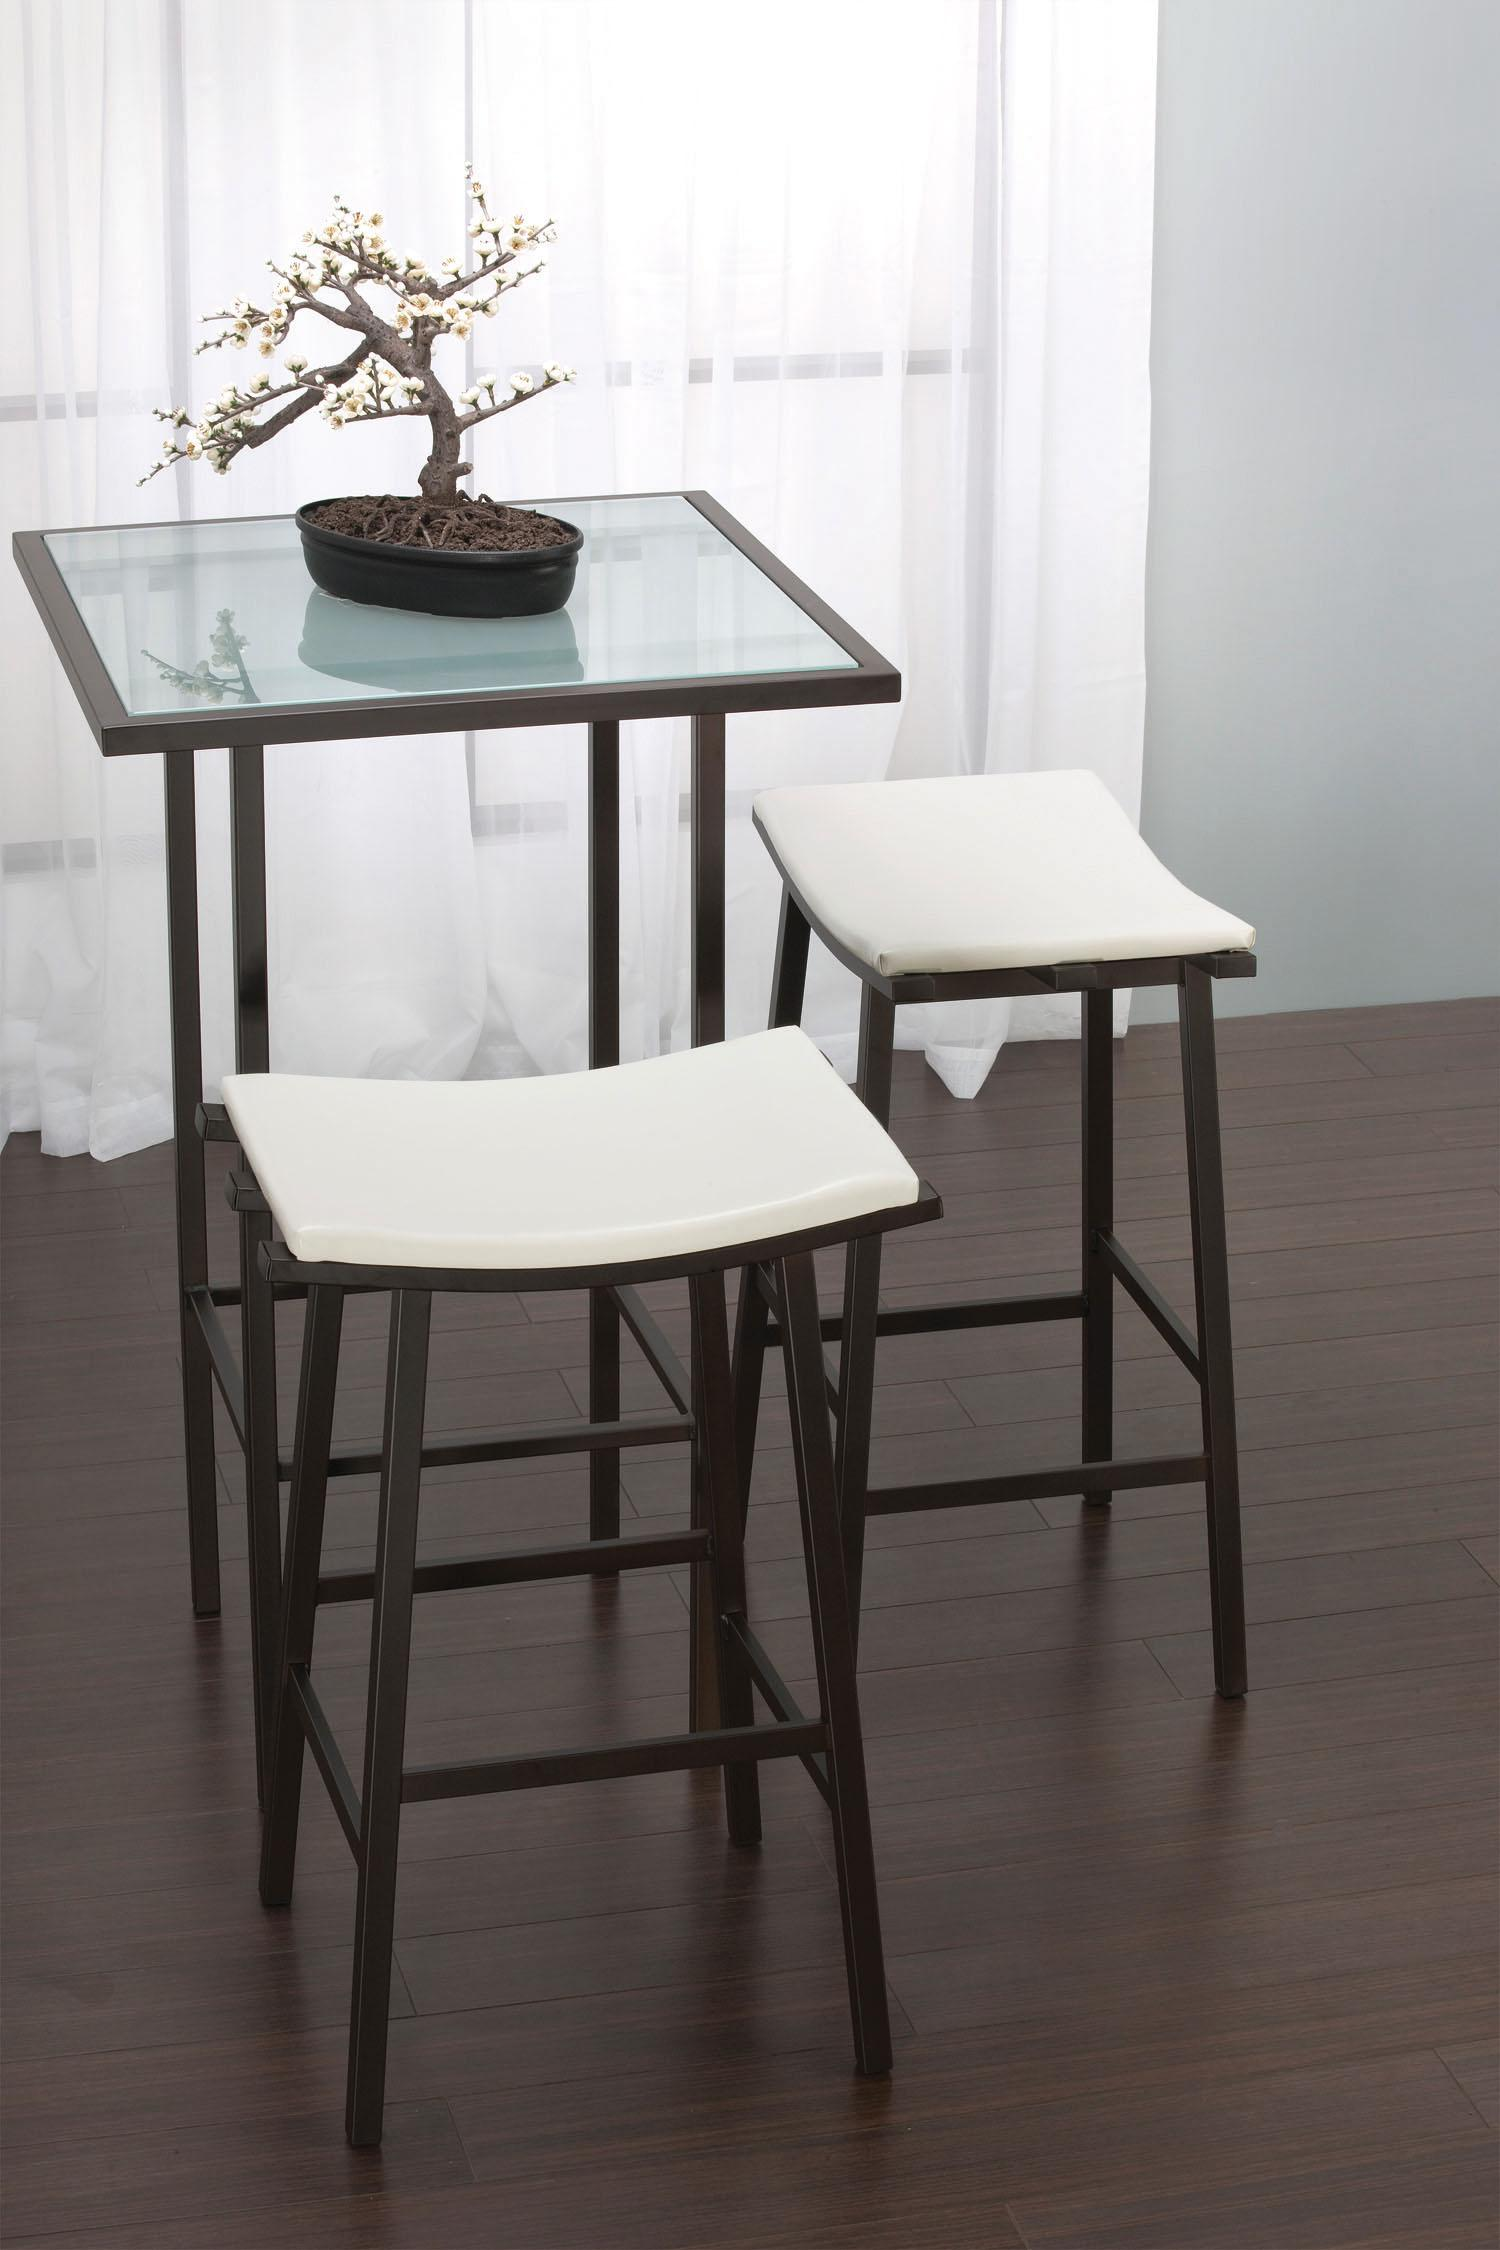 Amisco Aden Dinette Aden Counter Height Table SuperStore Pub